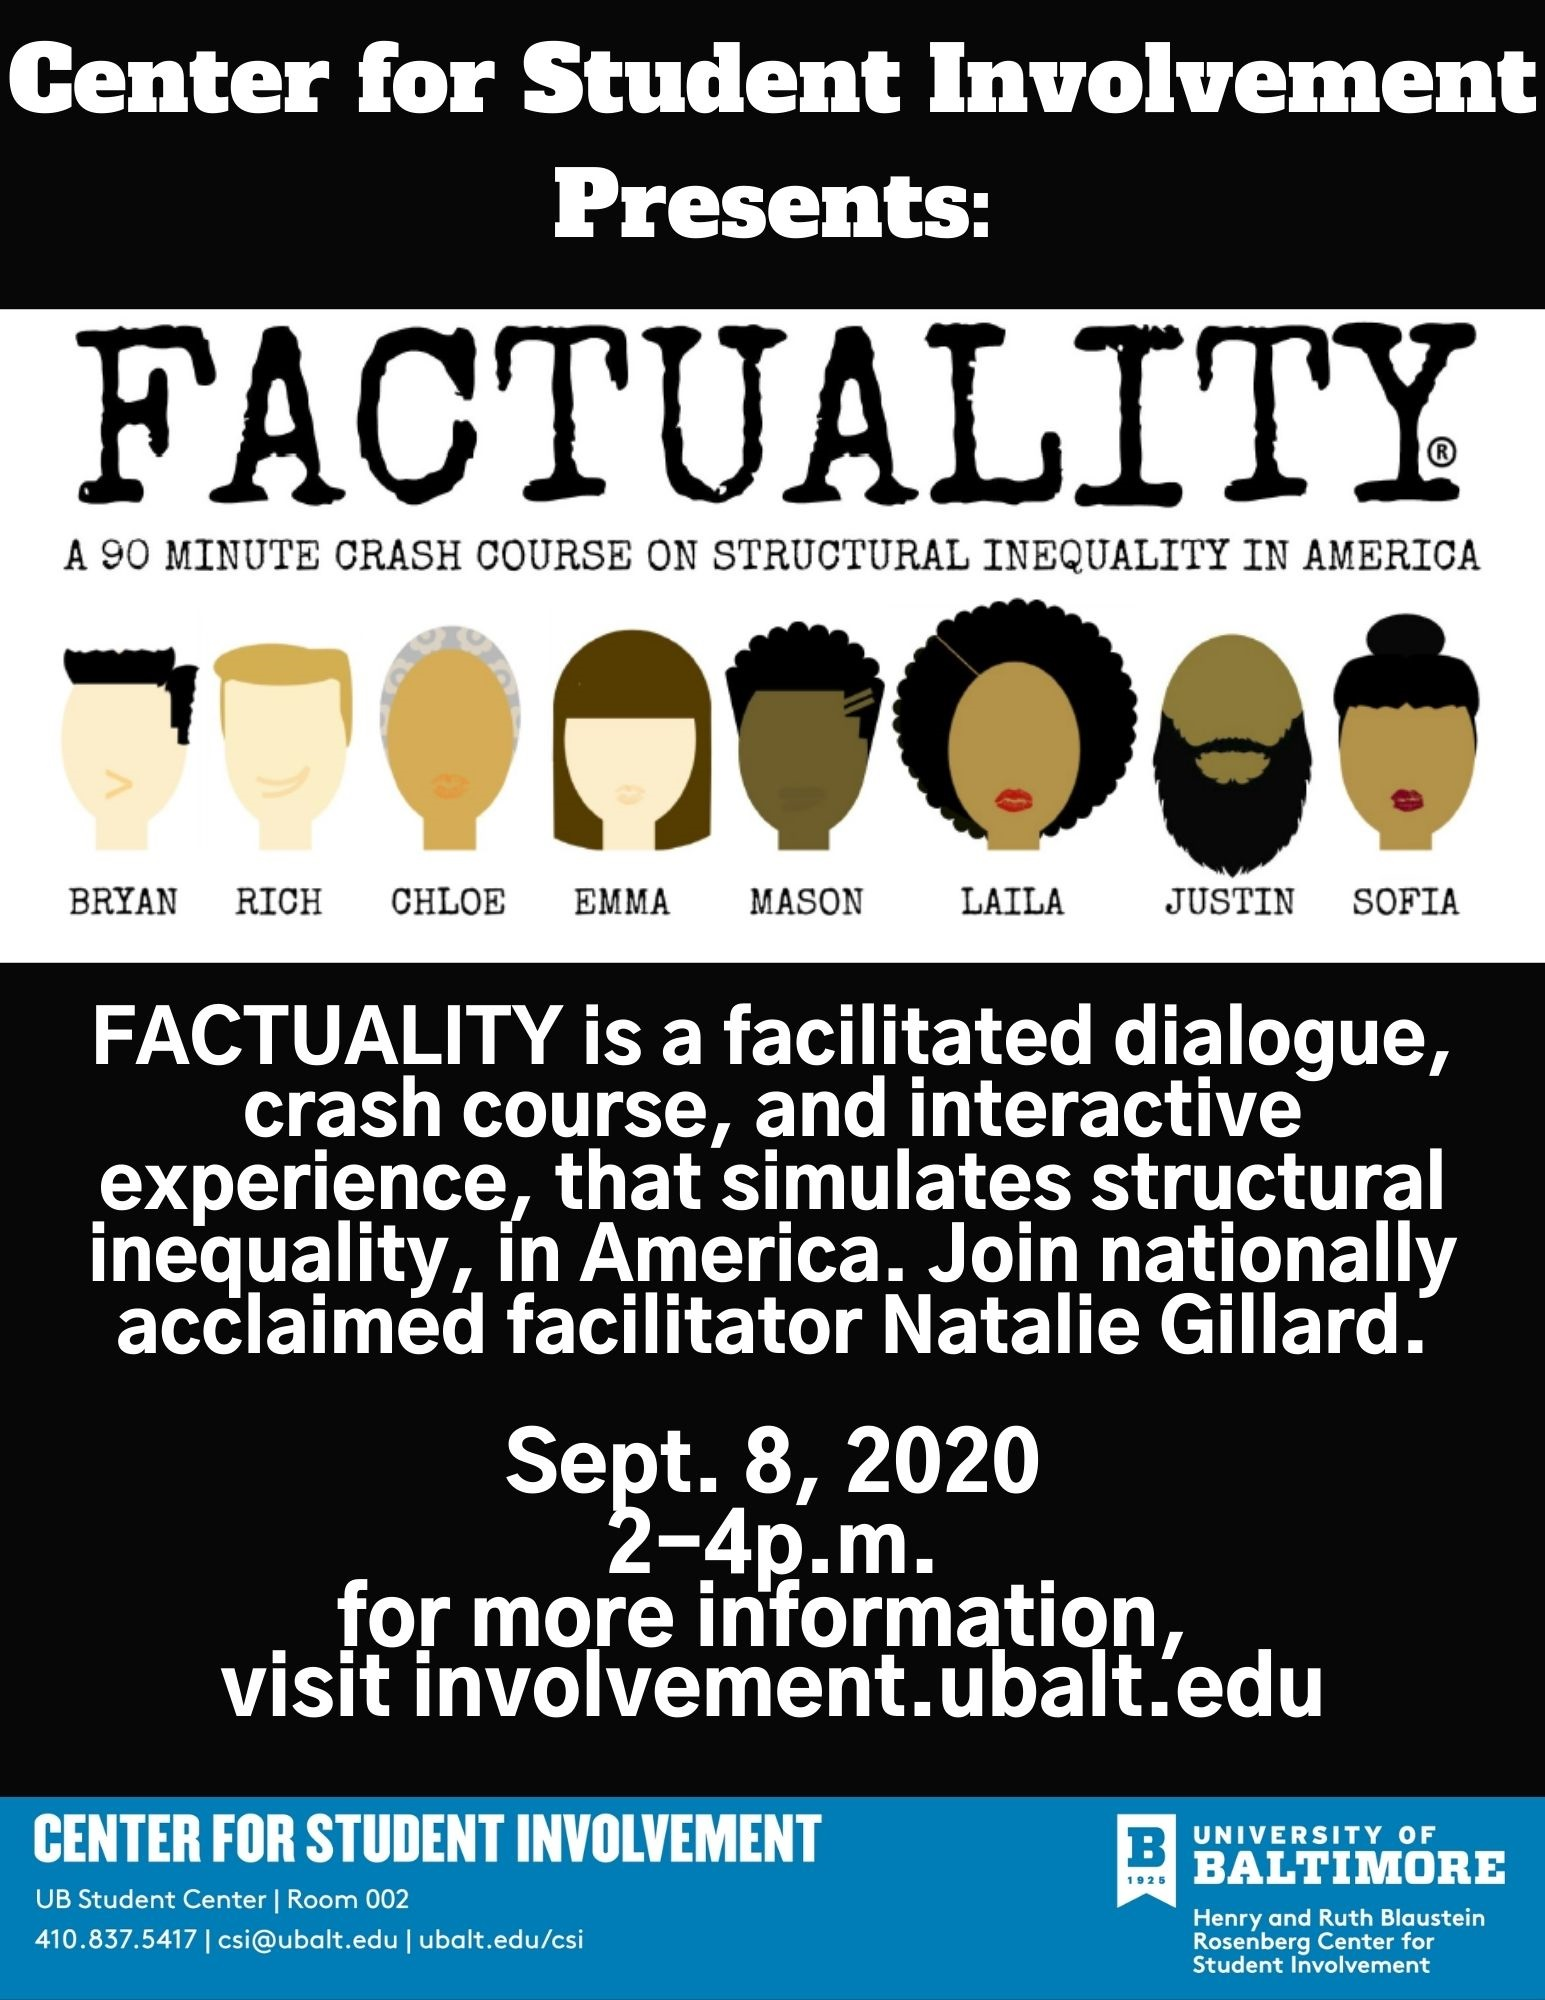 FACTUALITY by Natalie Gillard